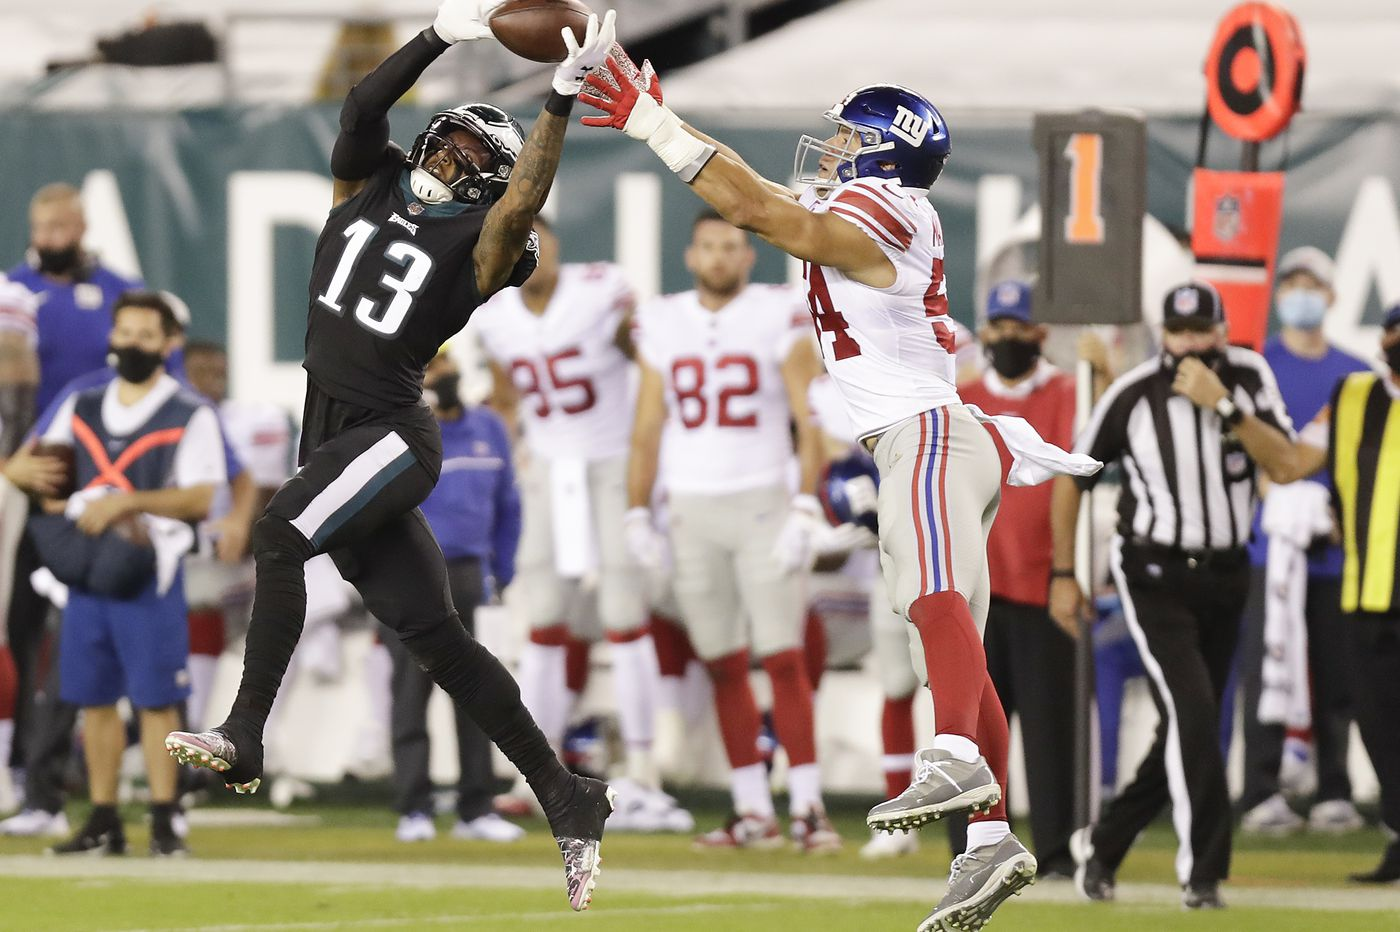 Eagles' Travis Fulgham says that so far, defensive attention hasn't gotten 'too crazy'